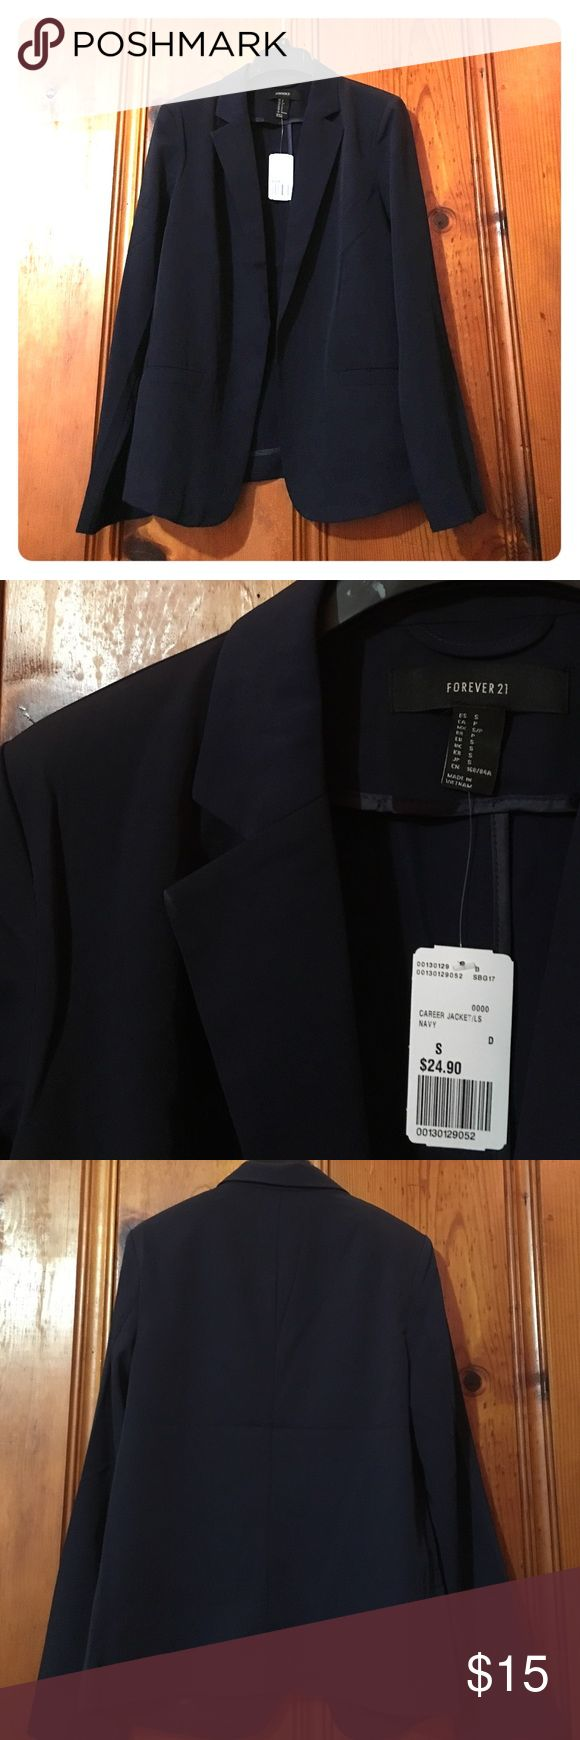 NWT navy career jacket Long sleeve navy blue blazer with no button closure. Two functional front pockets. Forever 21 Jackets & Coats Blazers